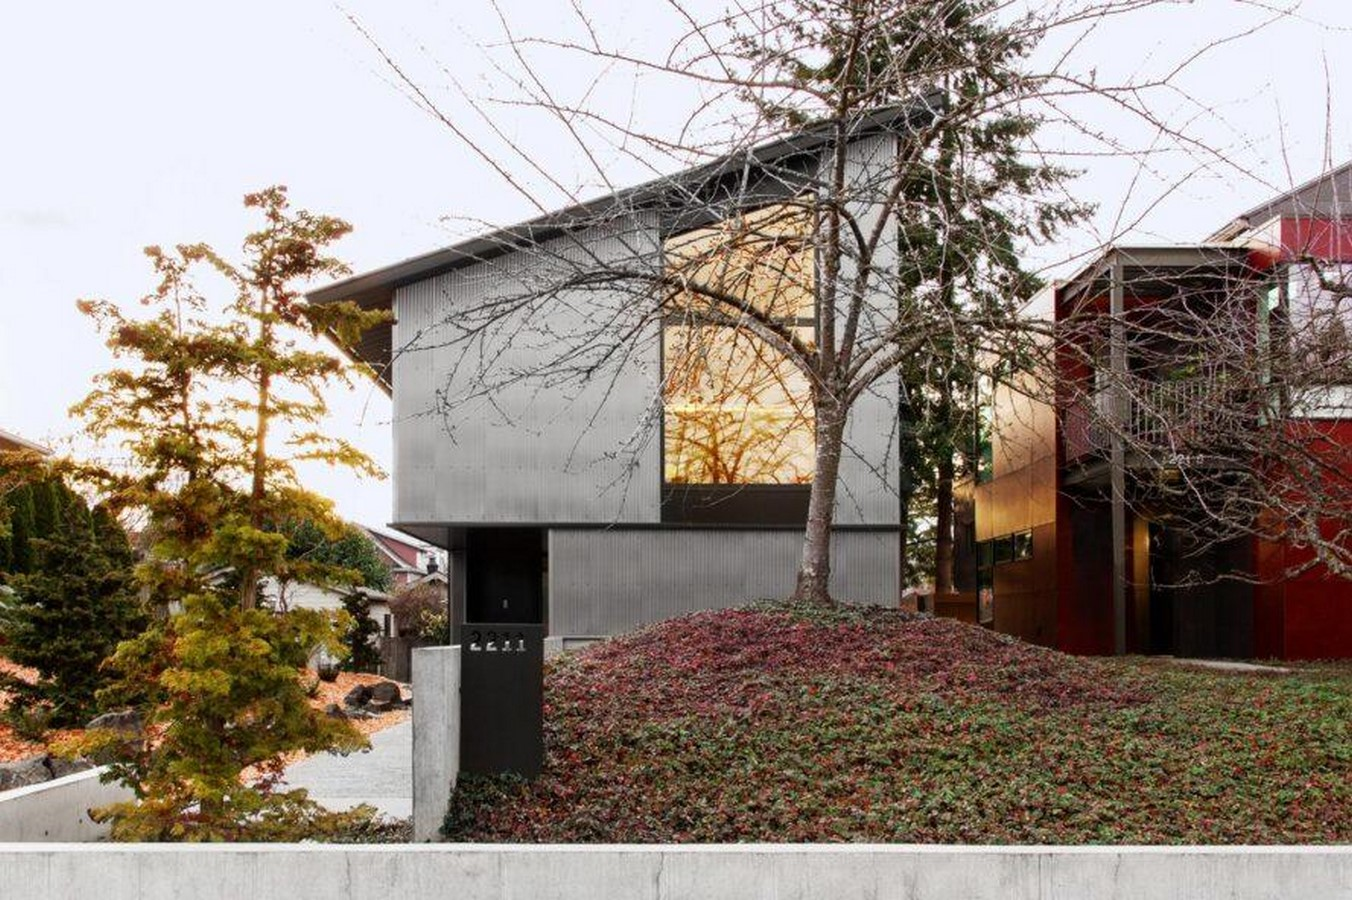 A net-zero compact home in Seattle is inspired by Shibui minimalism designed by SHED Architecture and Design - Sheet2